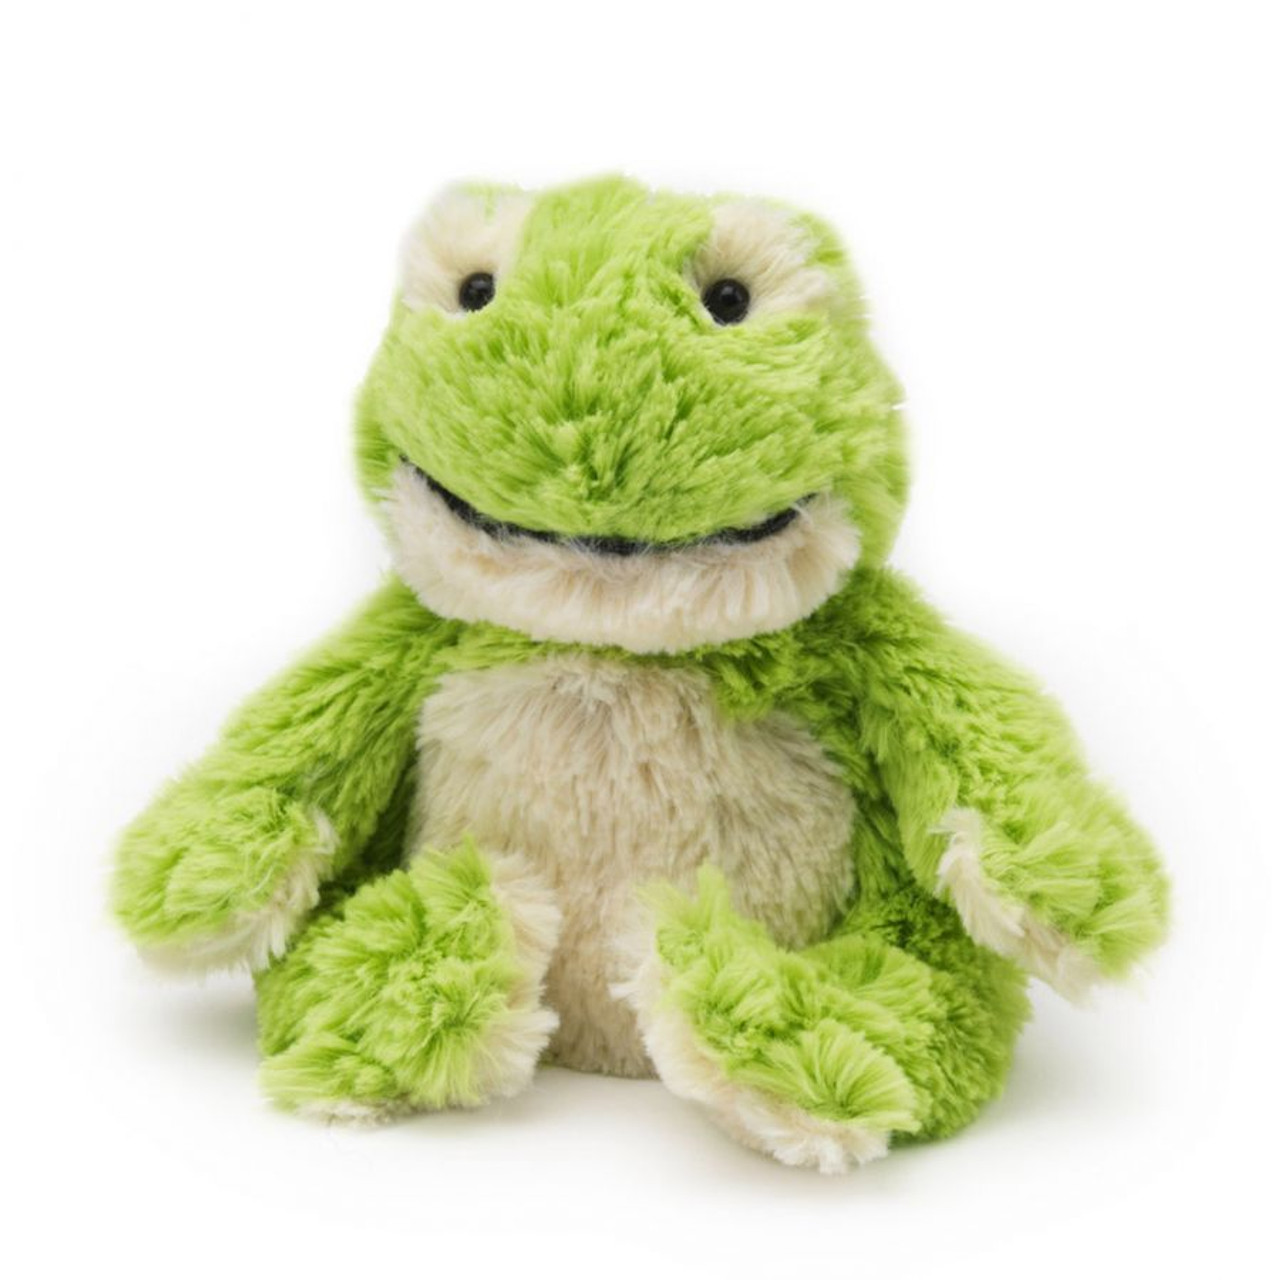 "All age groups can have hours of fun using their Warmies® Cozy Plush Junior Frog, knowing that they can be warm all night long.   The 9"" Junior Frog is fully microwavable yet entirely safe to hold tight after taking a bath, putting on PJs, and heading up the stairs to bed."